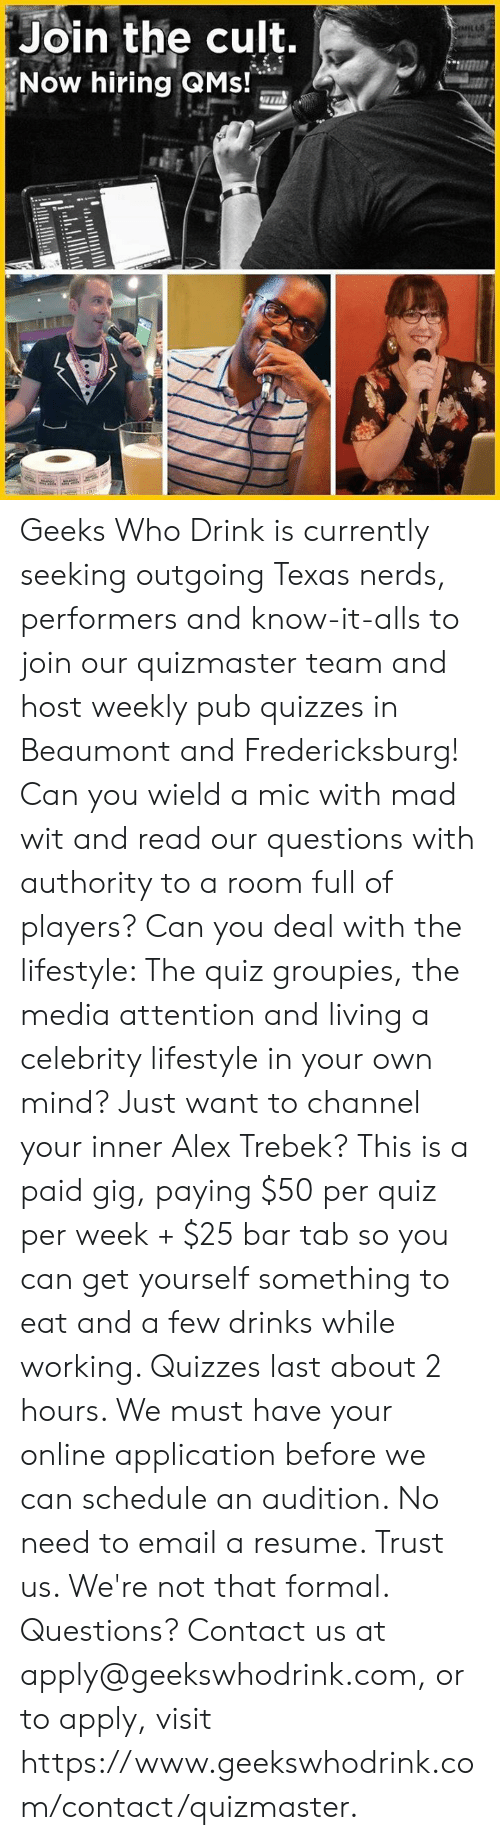 Someone Dying of Cancer This Year Who Is Alex Trebek? Brhuge